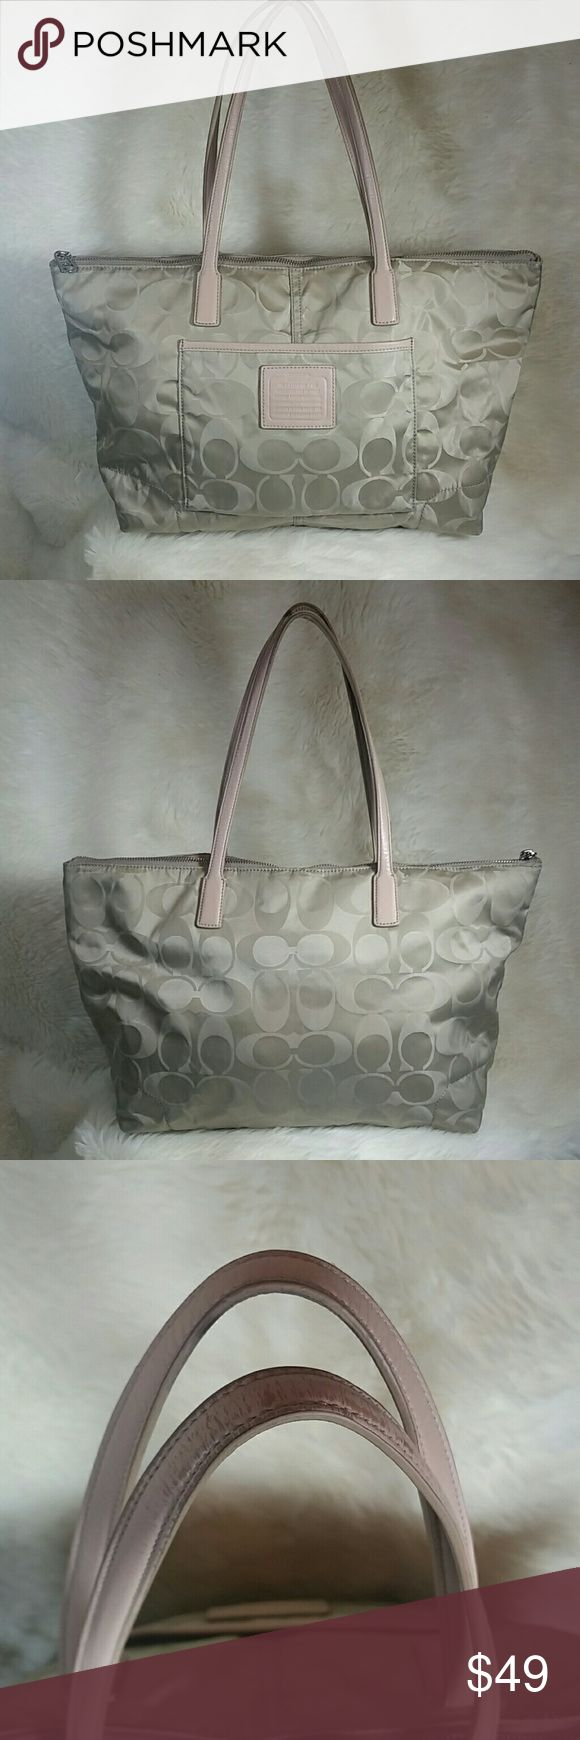 """Coach Legacy Signature Weekend Nylon Tote 24862 Coach Legacy Signature Weekend Nylon Tote. Coach creed #G1376-24762. Tan pearl sheen signature print. Tan leather handles show color rub. Full zip top closure. Interior has minor spotting and exterior has minor spotting with the majority being on the bottom. No corner wear. Zipper works perfectly. Inside zip pocket with 2 open pockets on opposite side.   17"""" long 10.5"""" tall 6"""" wide  9"""" strap drop Coach Bags Totes"""